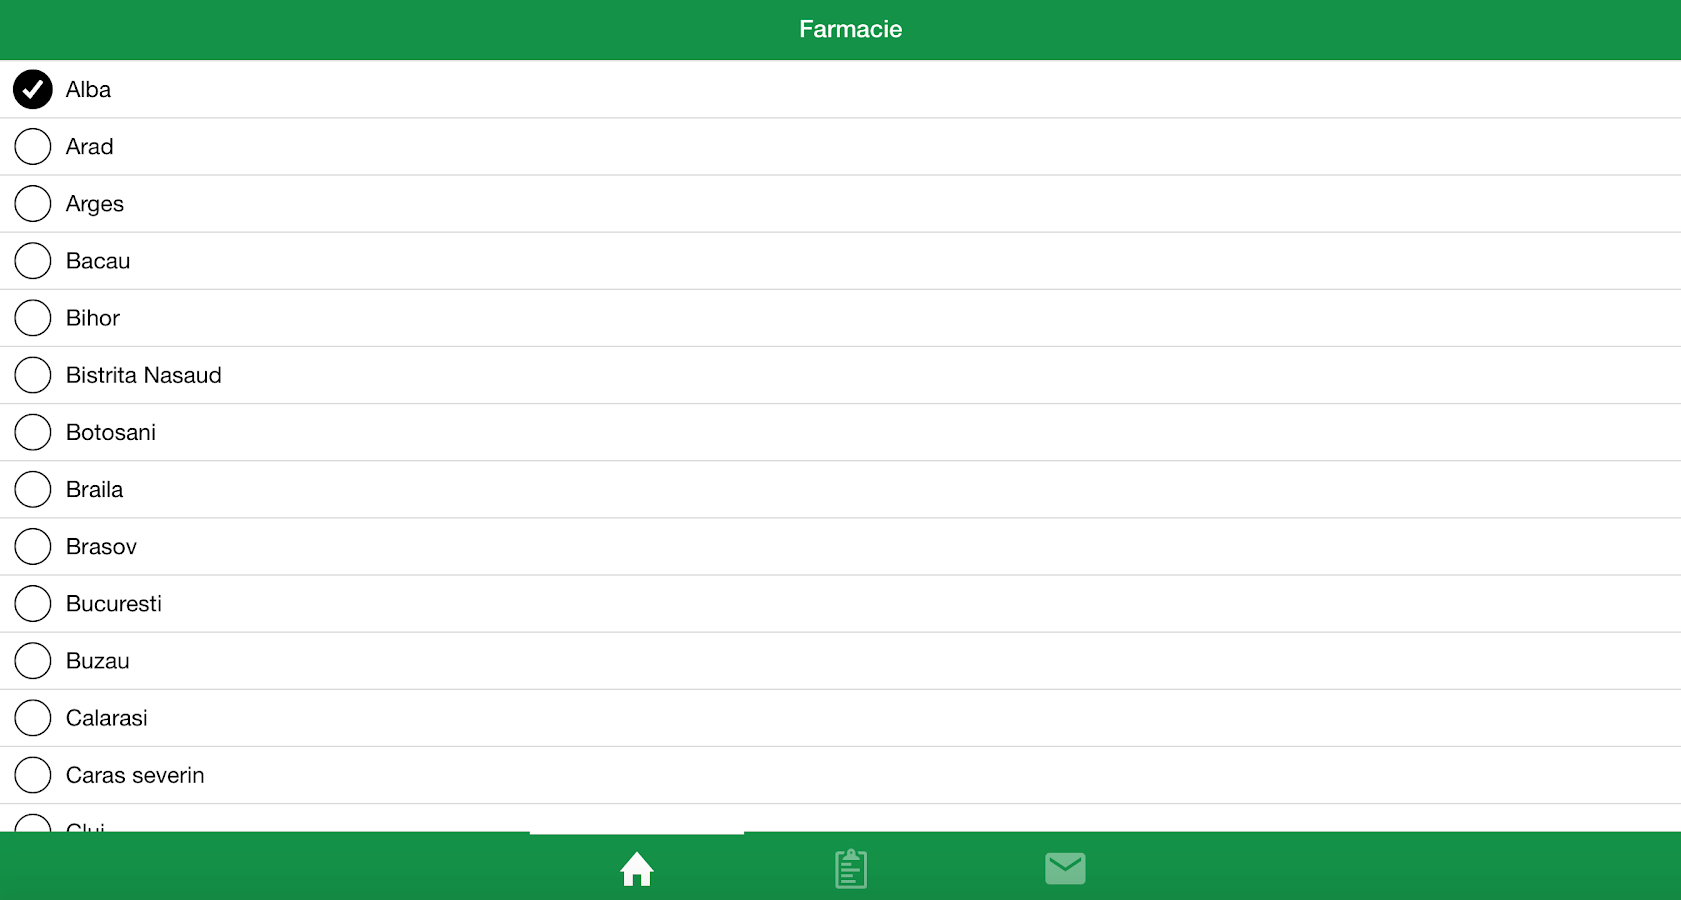 Farmacie- screenshot